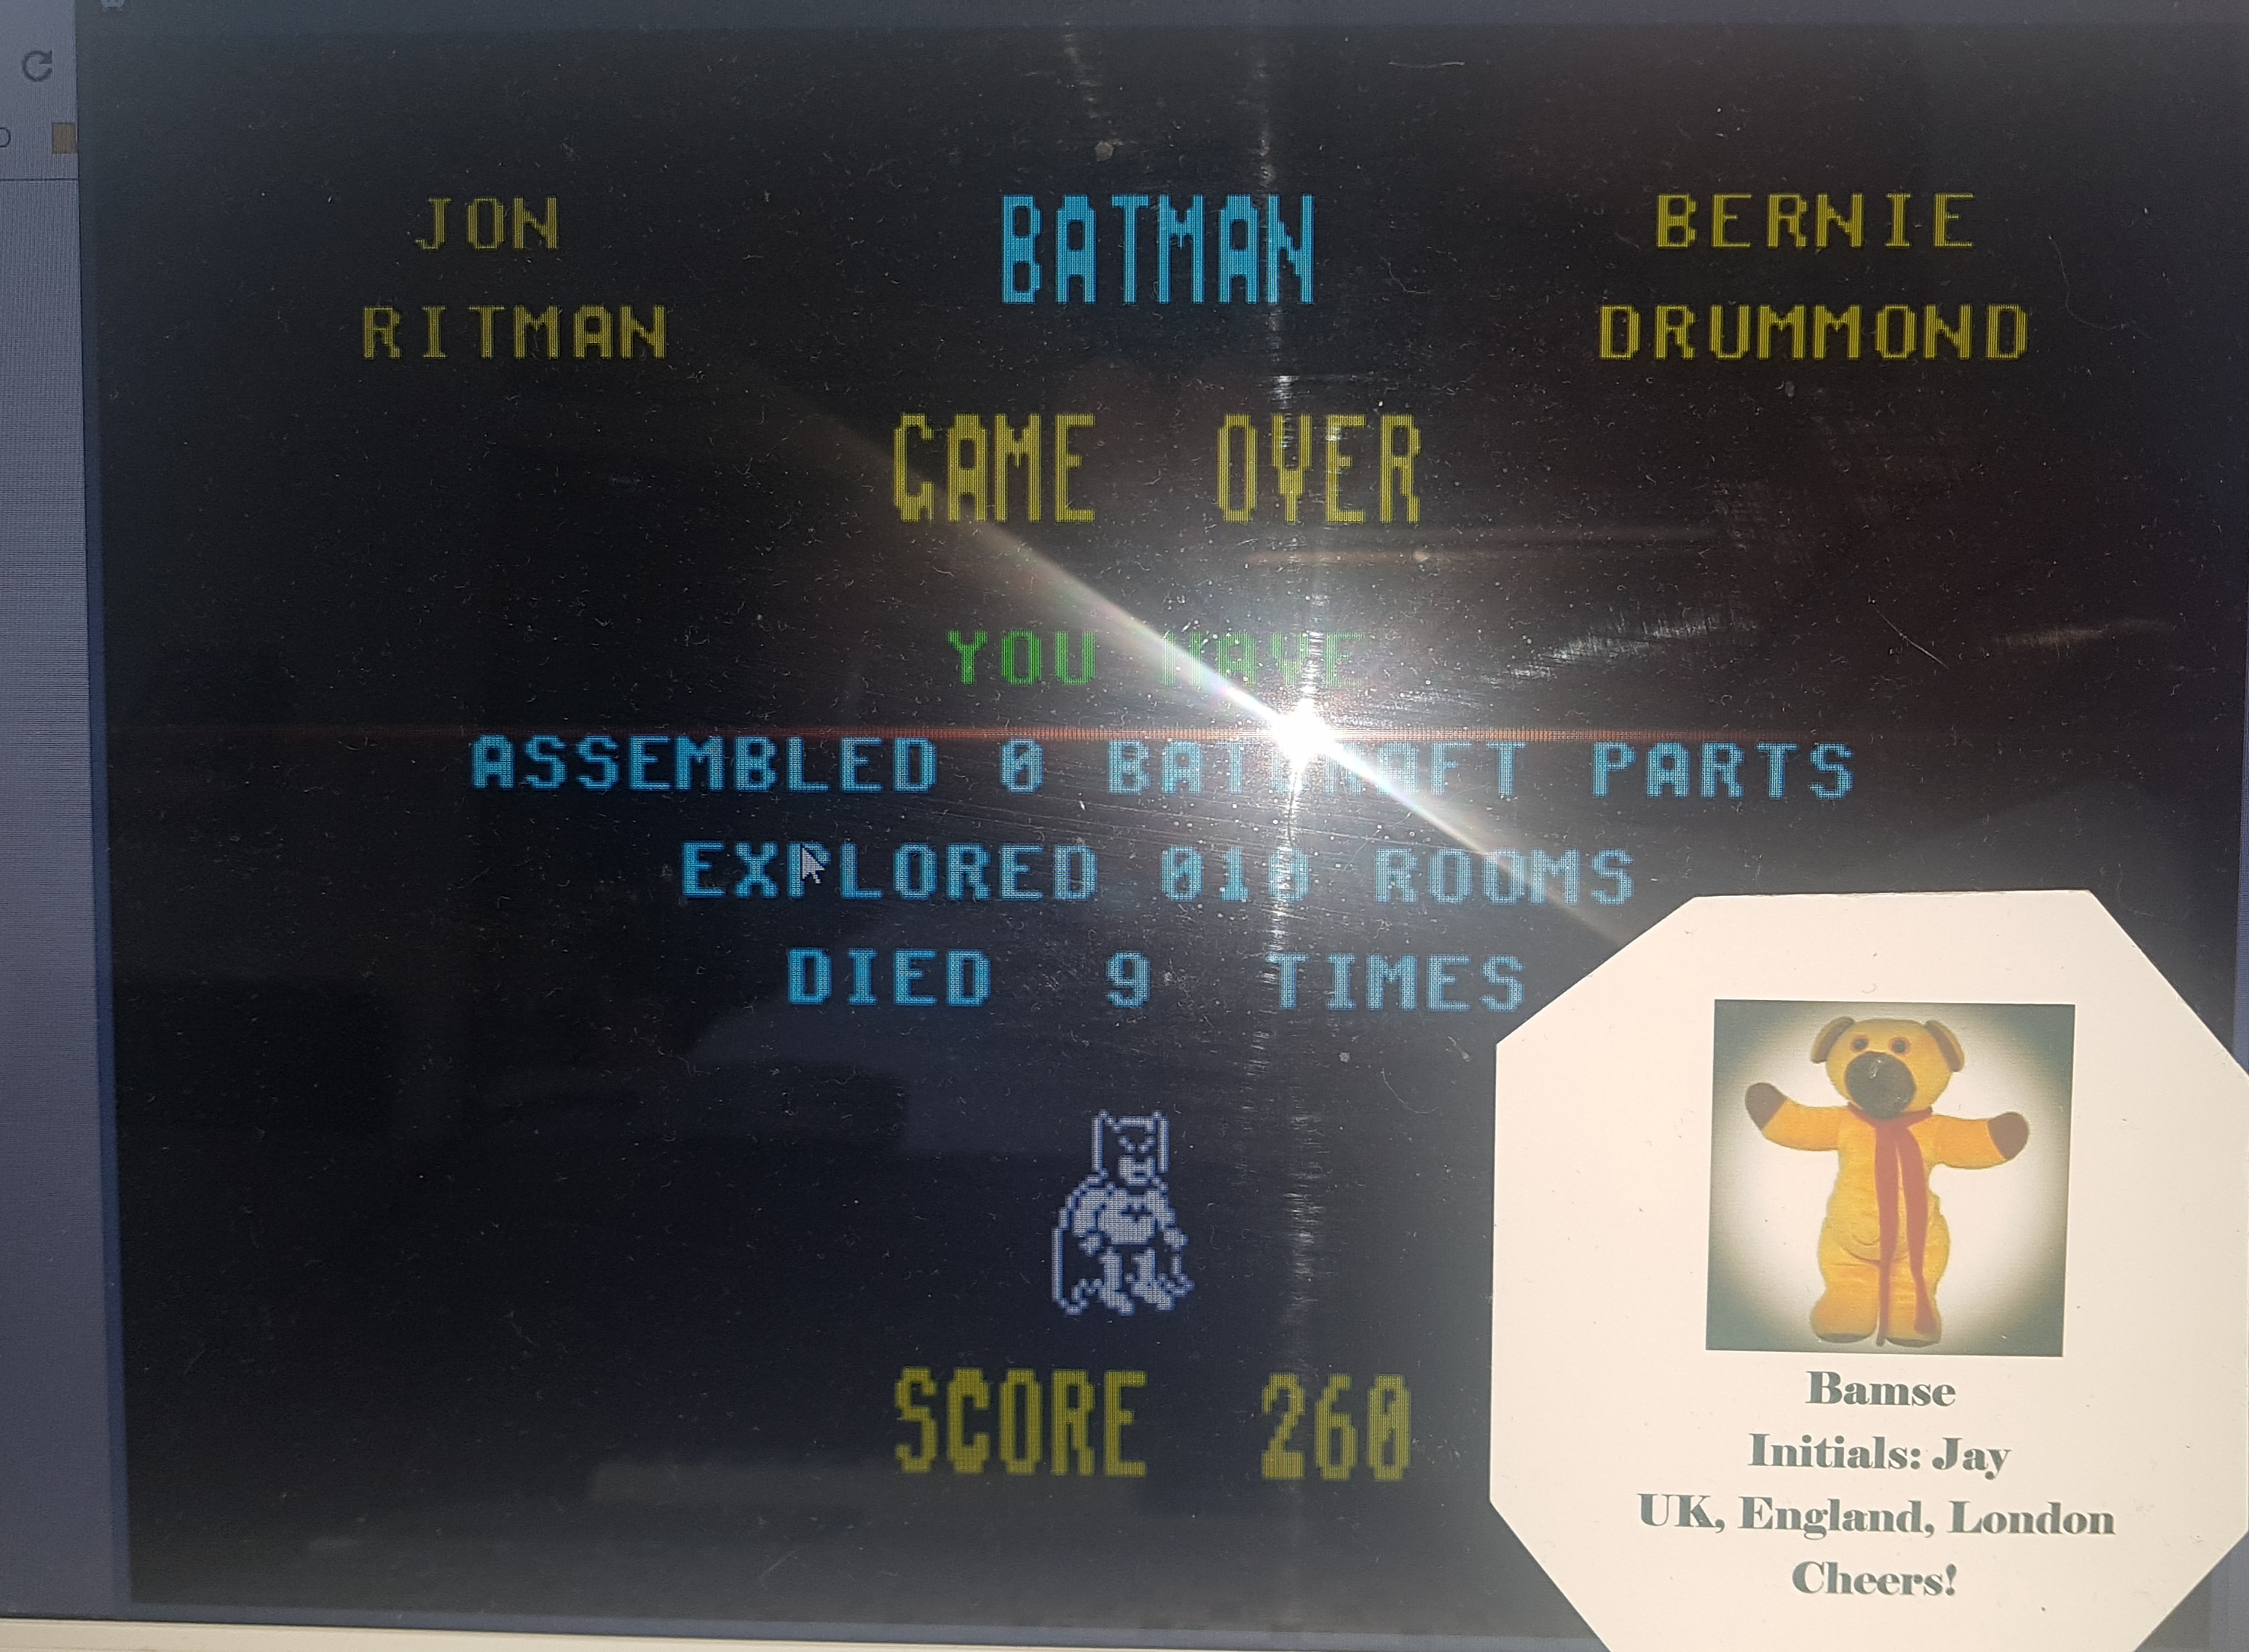 Batman 260 points